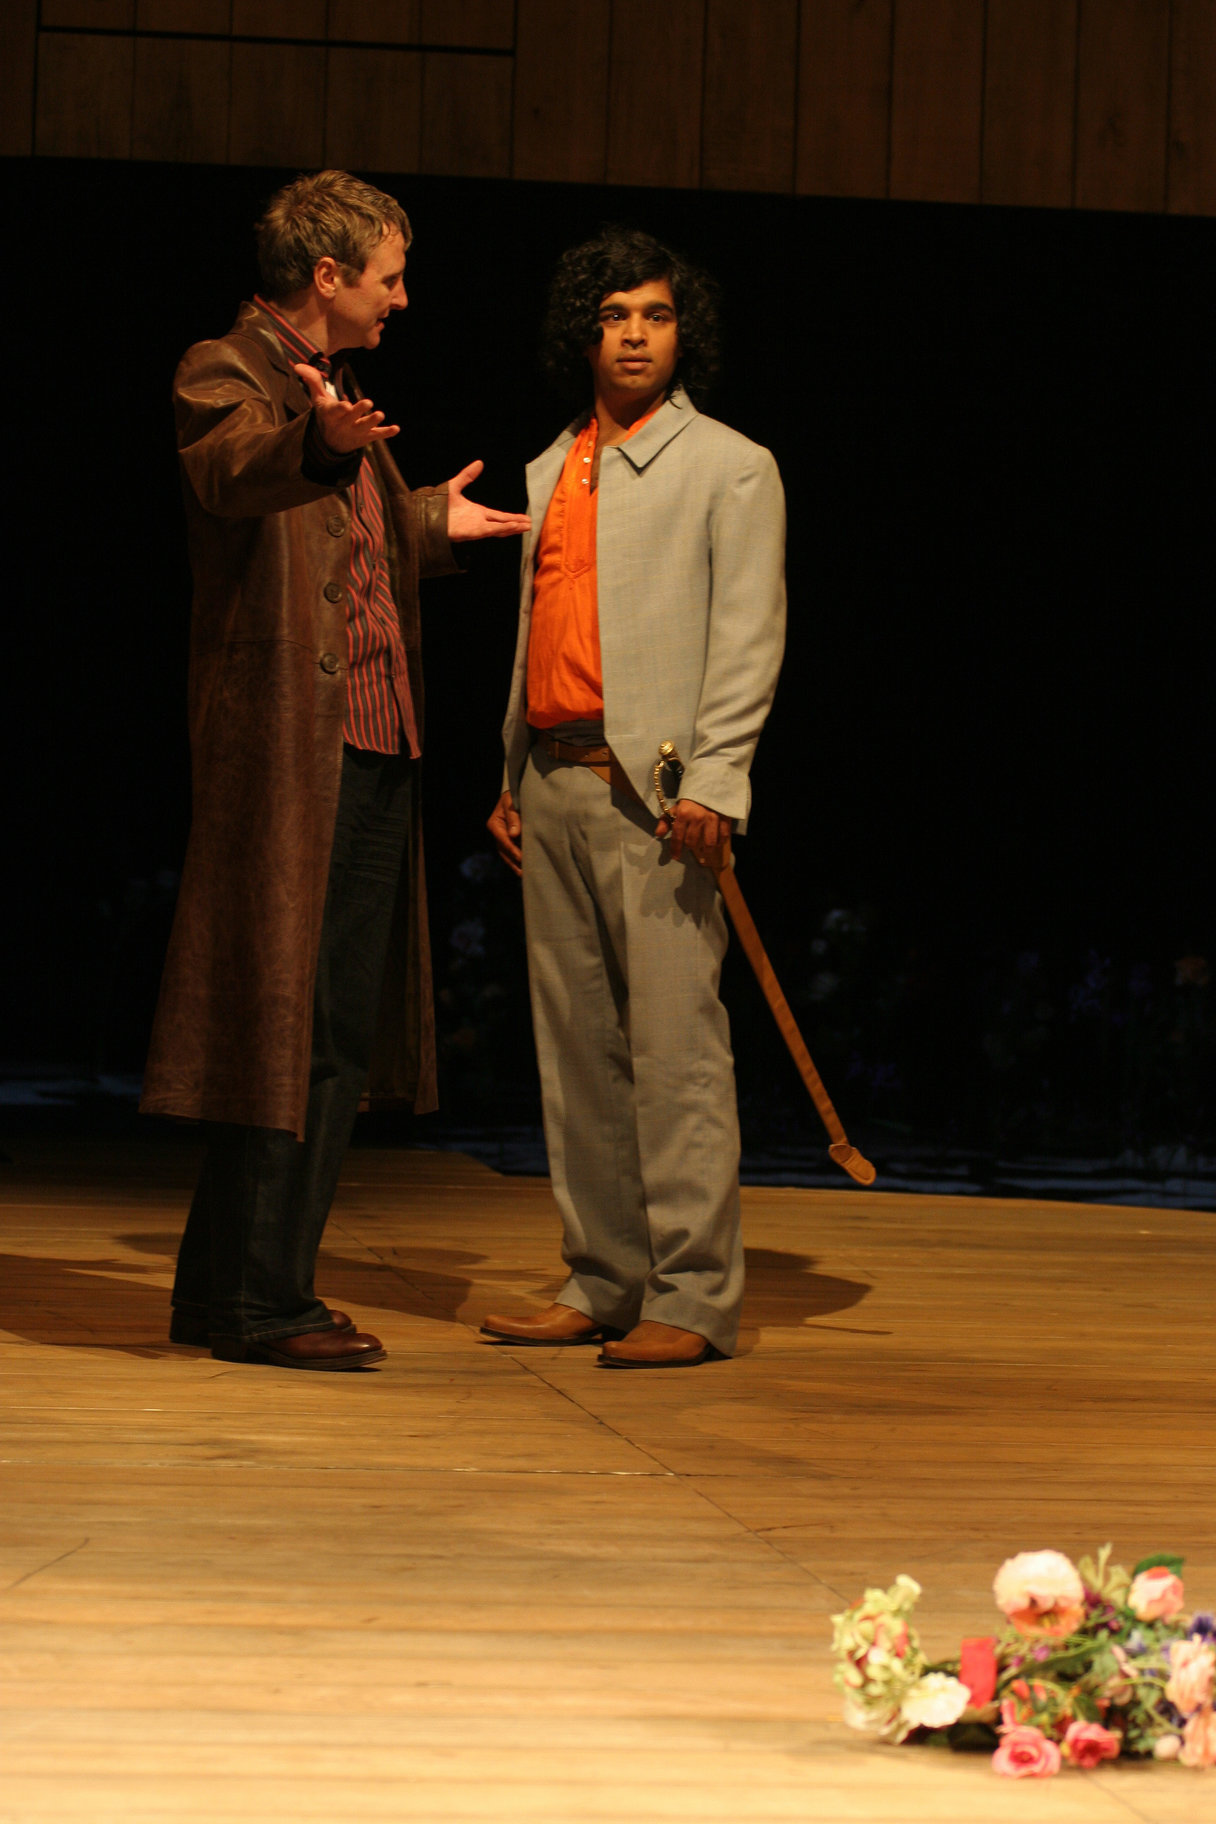 Sebastian and Antonio stand together in the 2005 production of Twelfth Night.